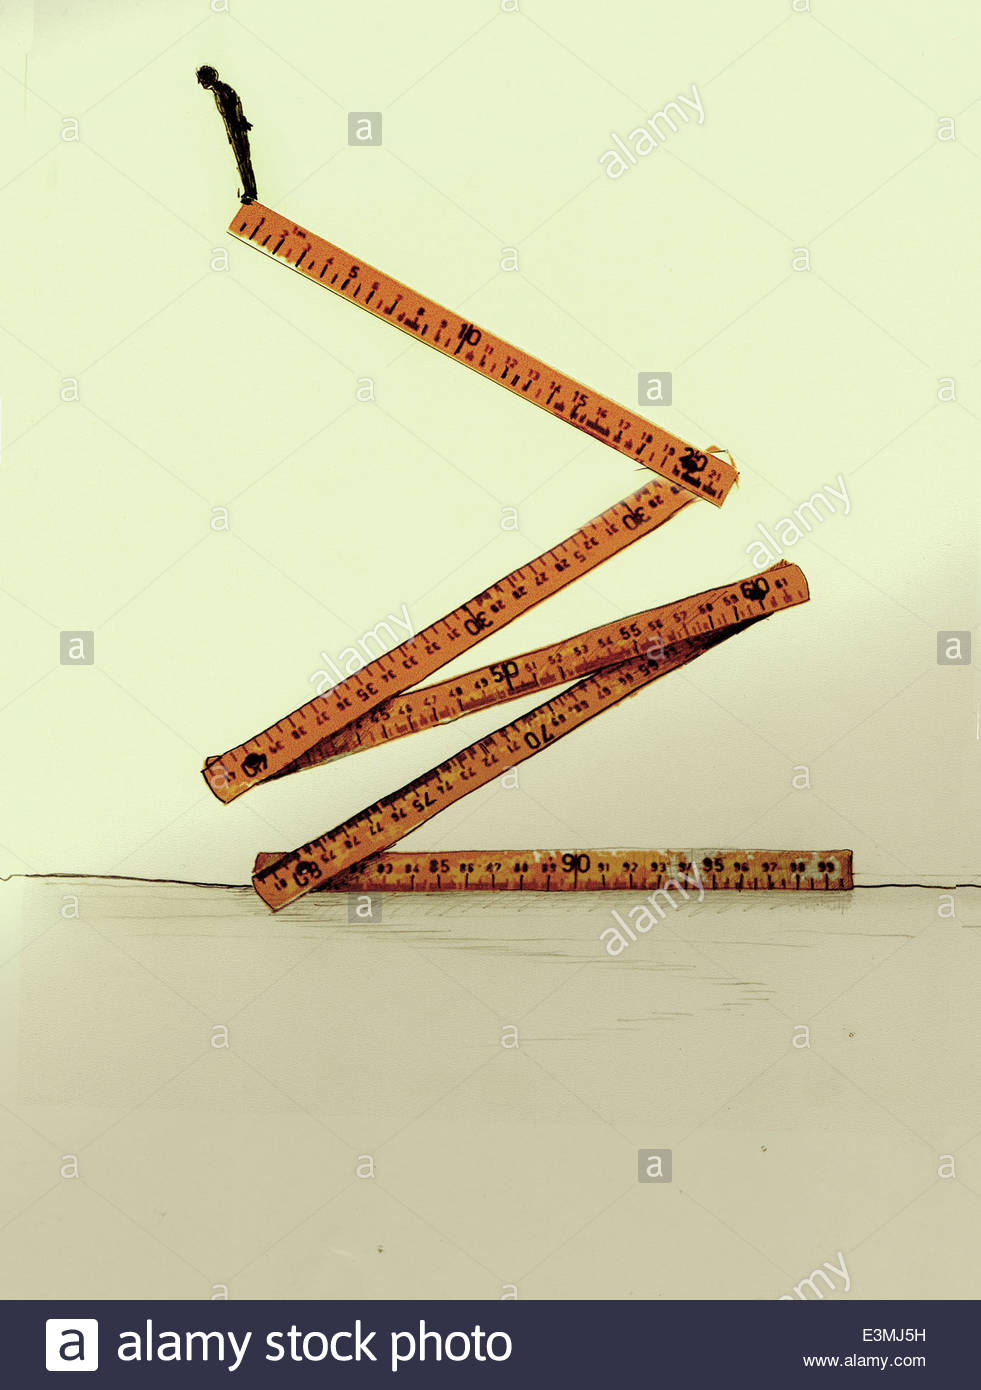 Businessman standing high up at the edge of folding ruler - Stock Image